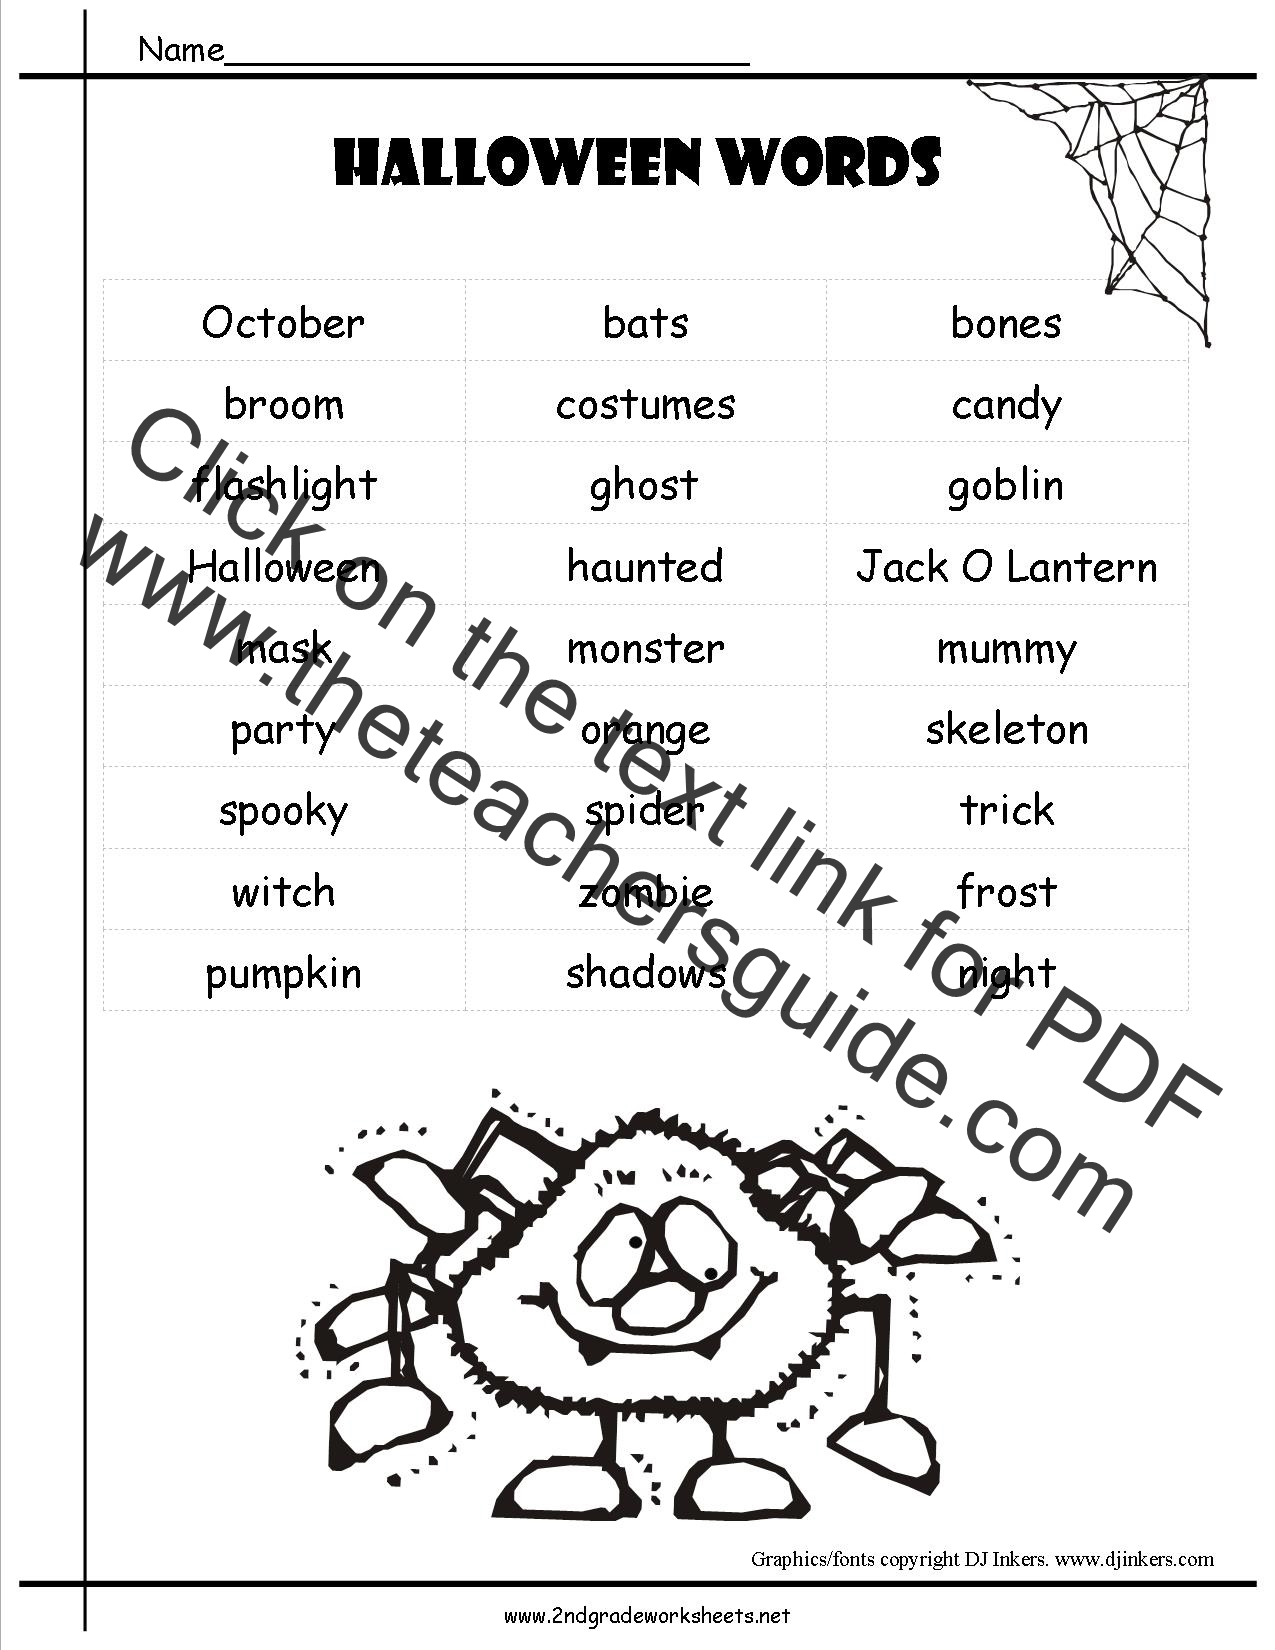 Worksheets Halloween Worksheets halloween worksheets and printouts worksheets